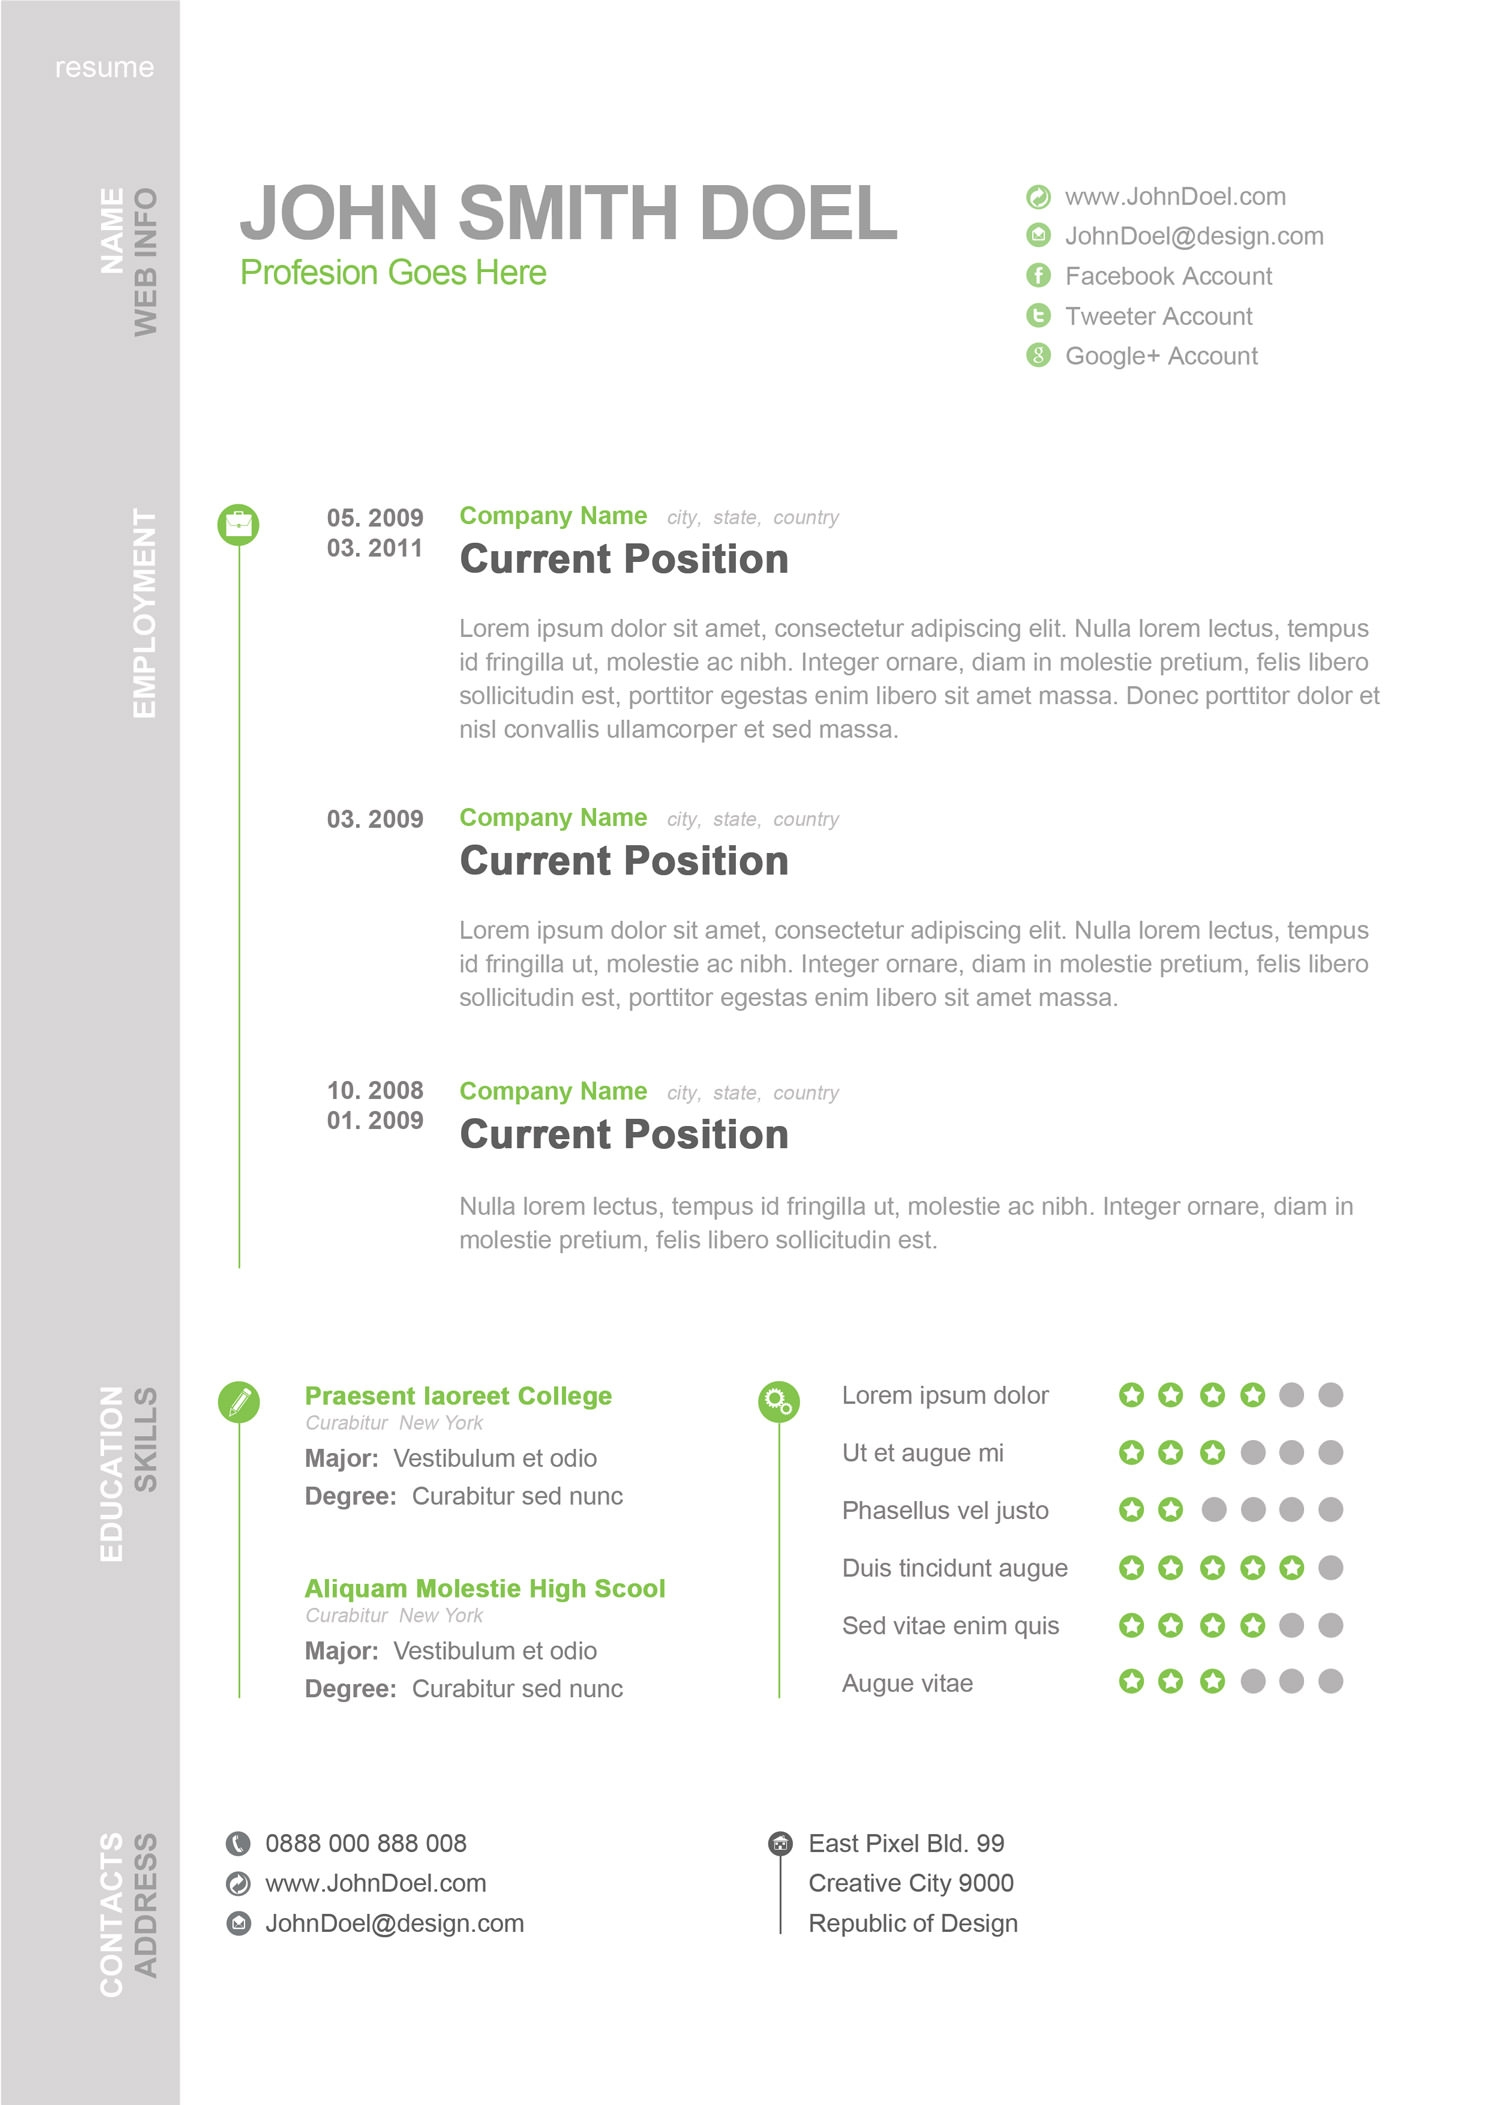 resume Awesome Resumes 40 resume template designs freecreatives best cv design psd